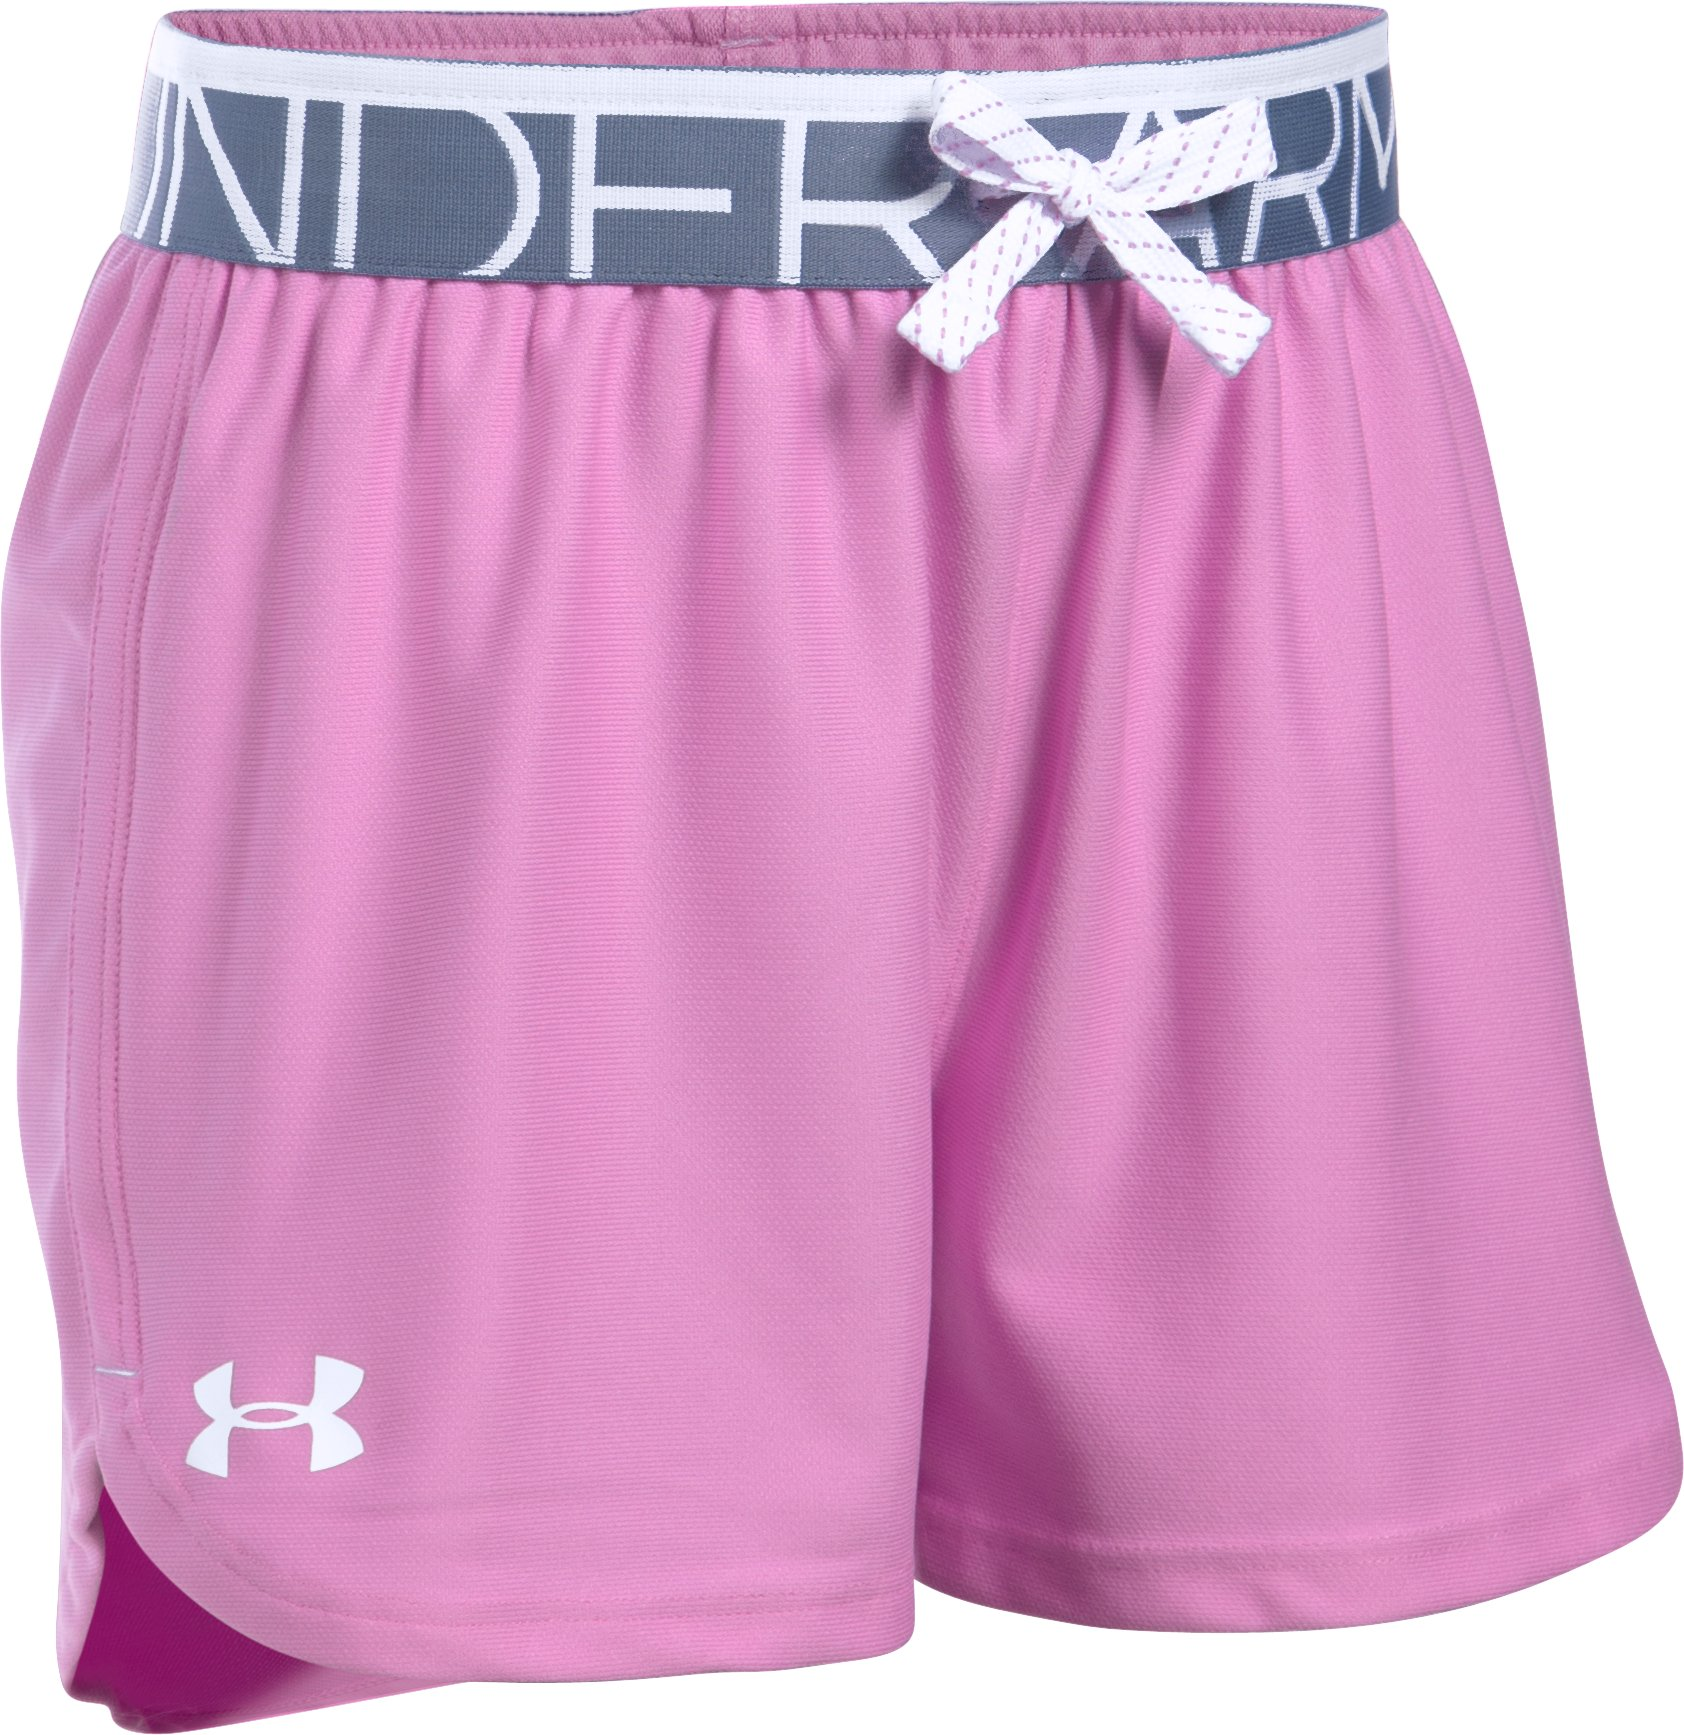 Girls' UA Play Up Shorts - 3 for $35, VERVE VIOLET, undefined